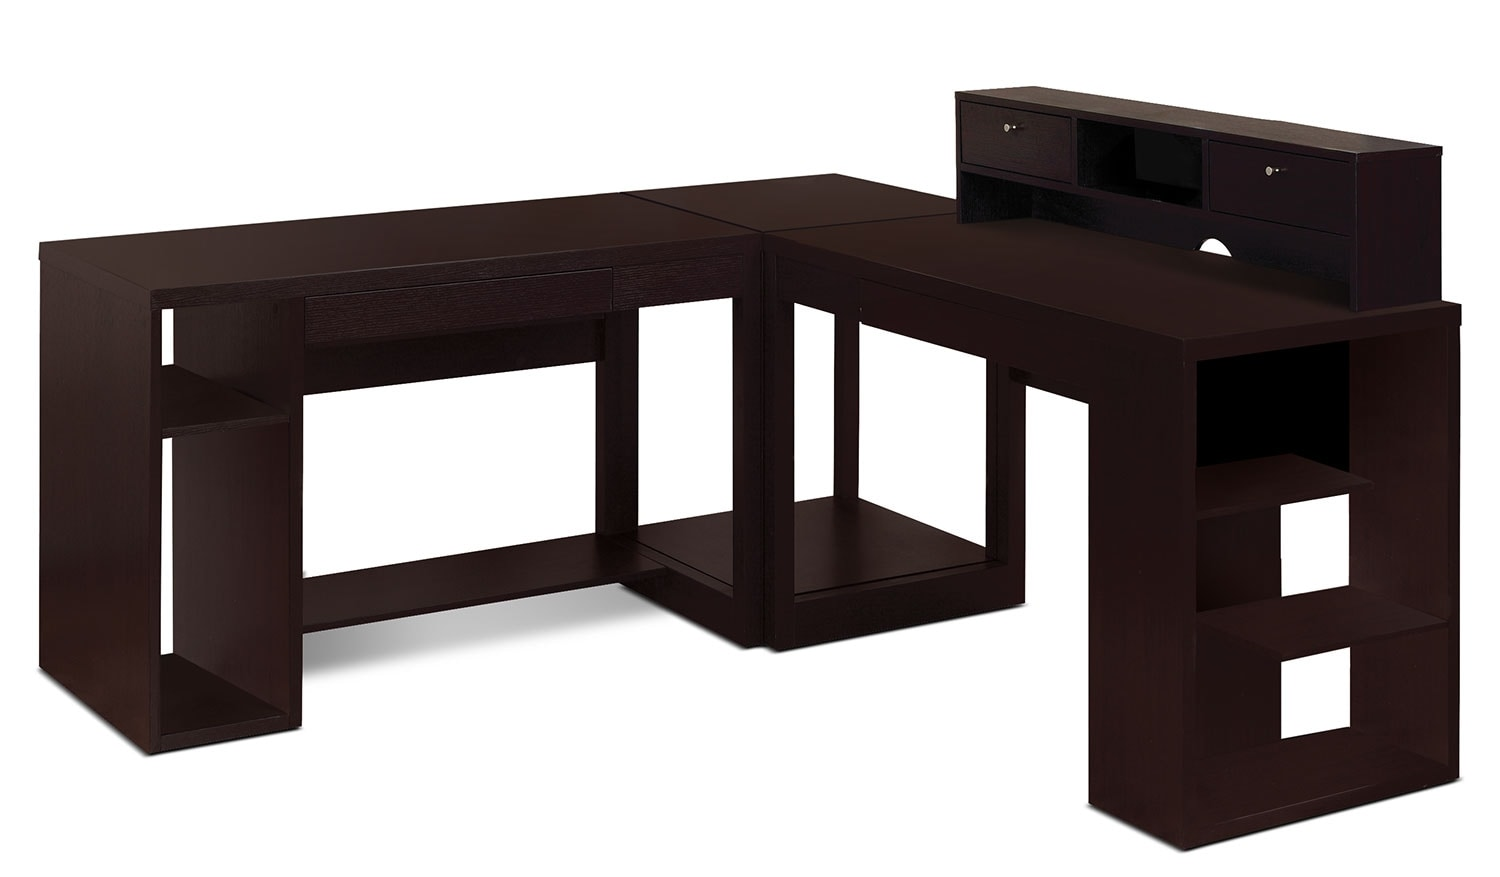 Home Office Furniture - Peyton 4-Piece Desk Package